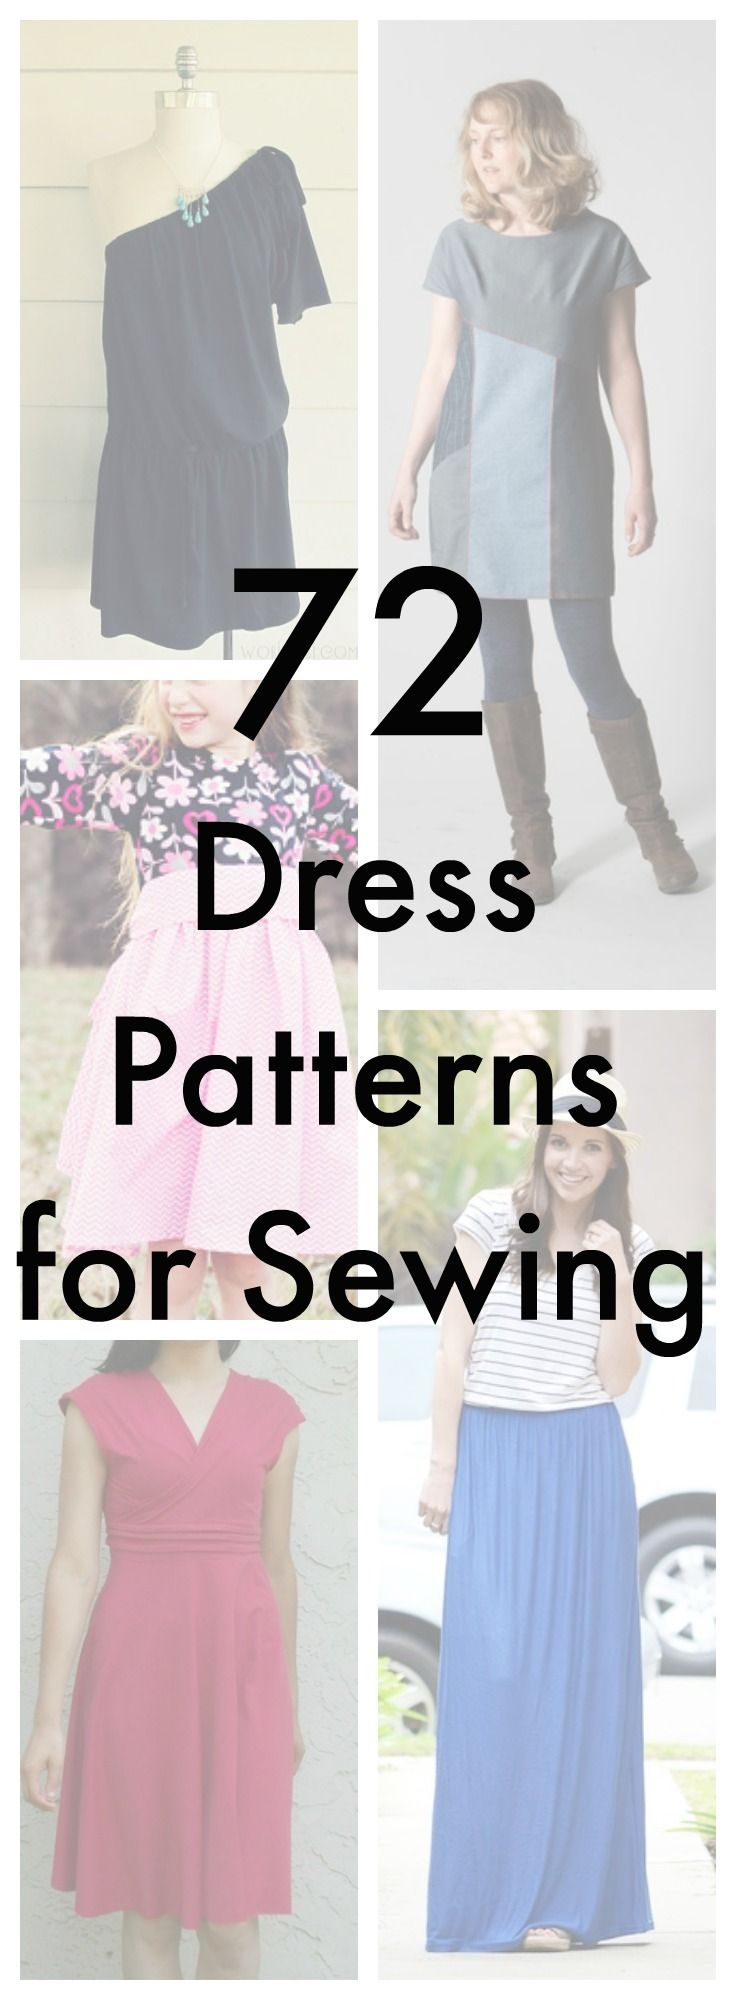 Dress Patterns for Sewing + New Free Dress Patterns | AllFreeSewing.com